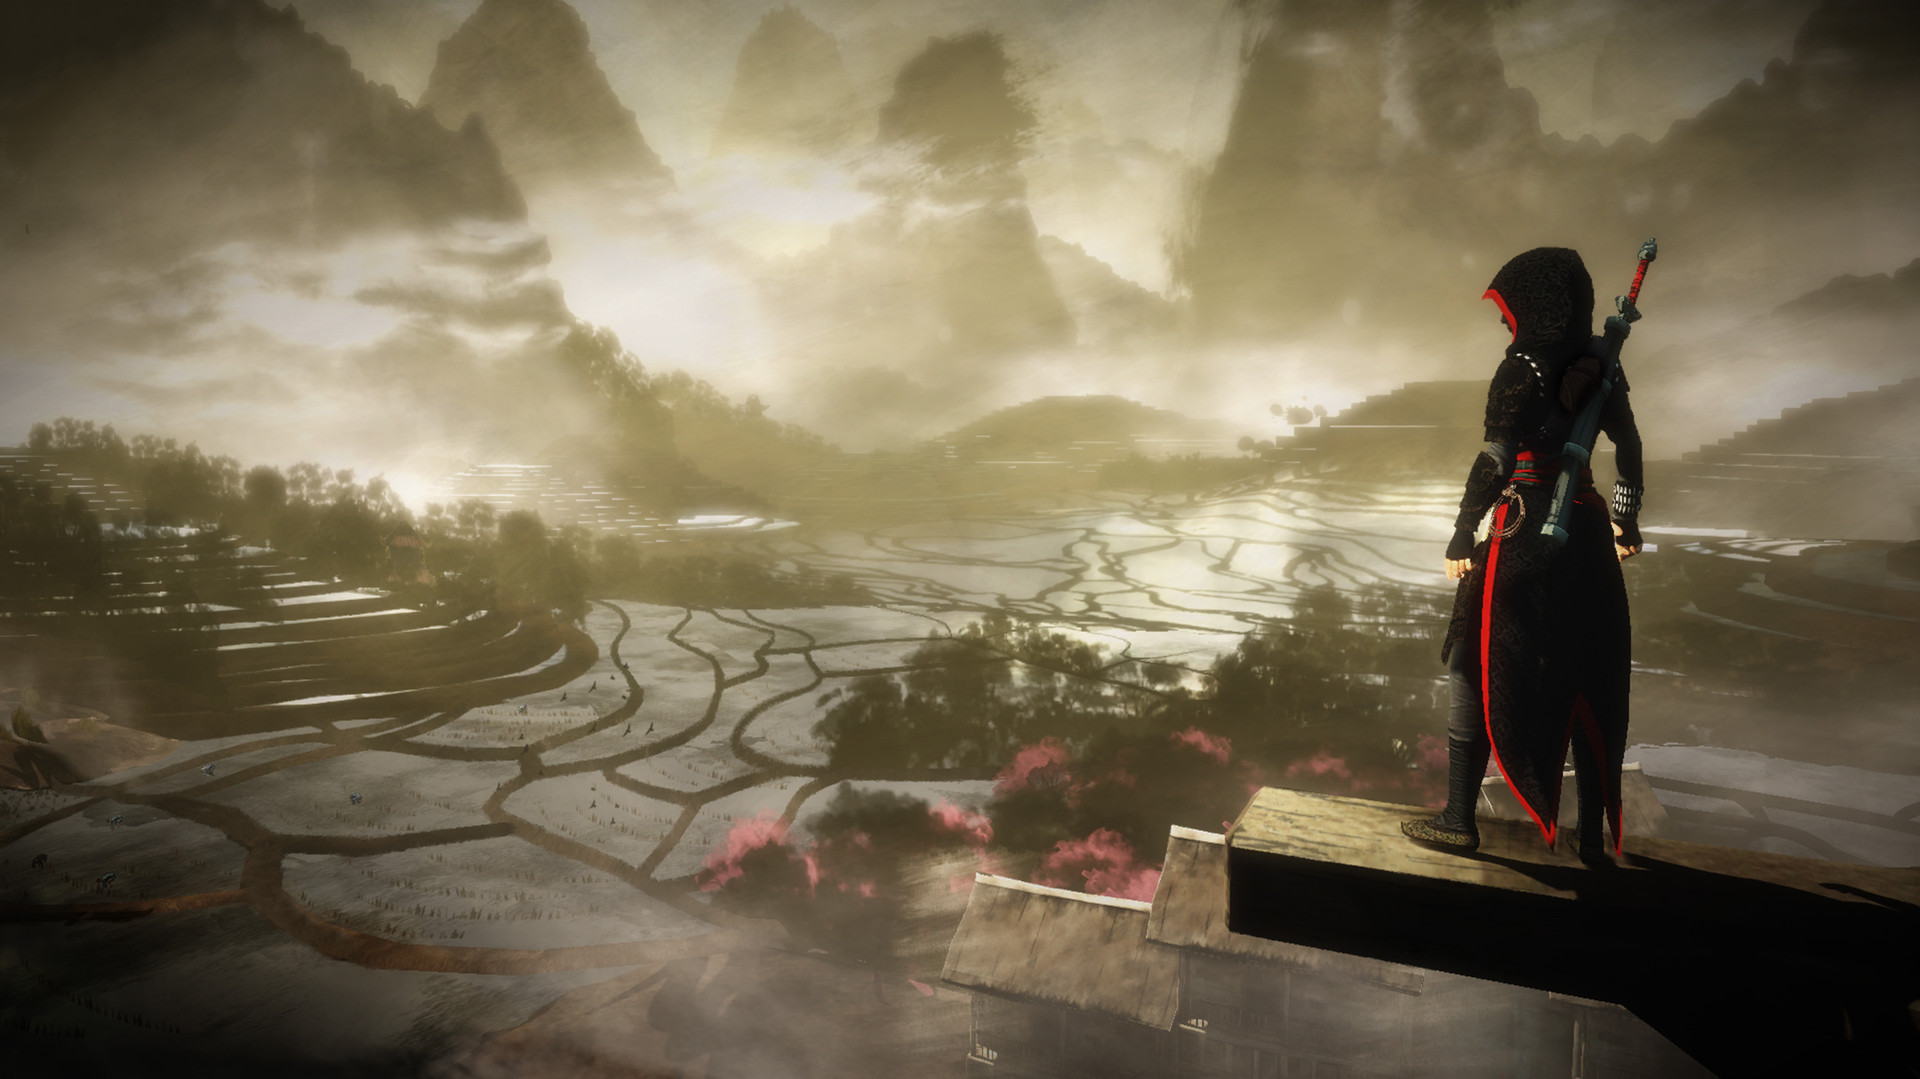 ASSASSIN'S CREED CHRONICLES: CHINA + WARRANTY + MORE